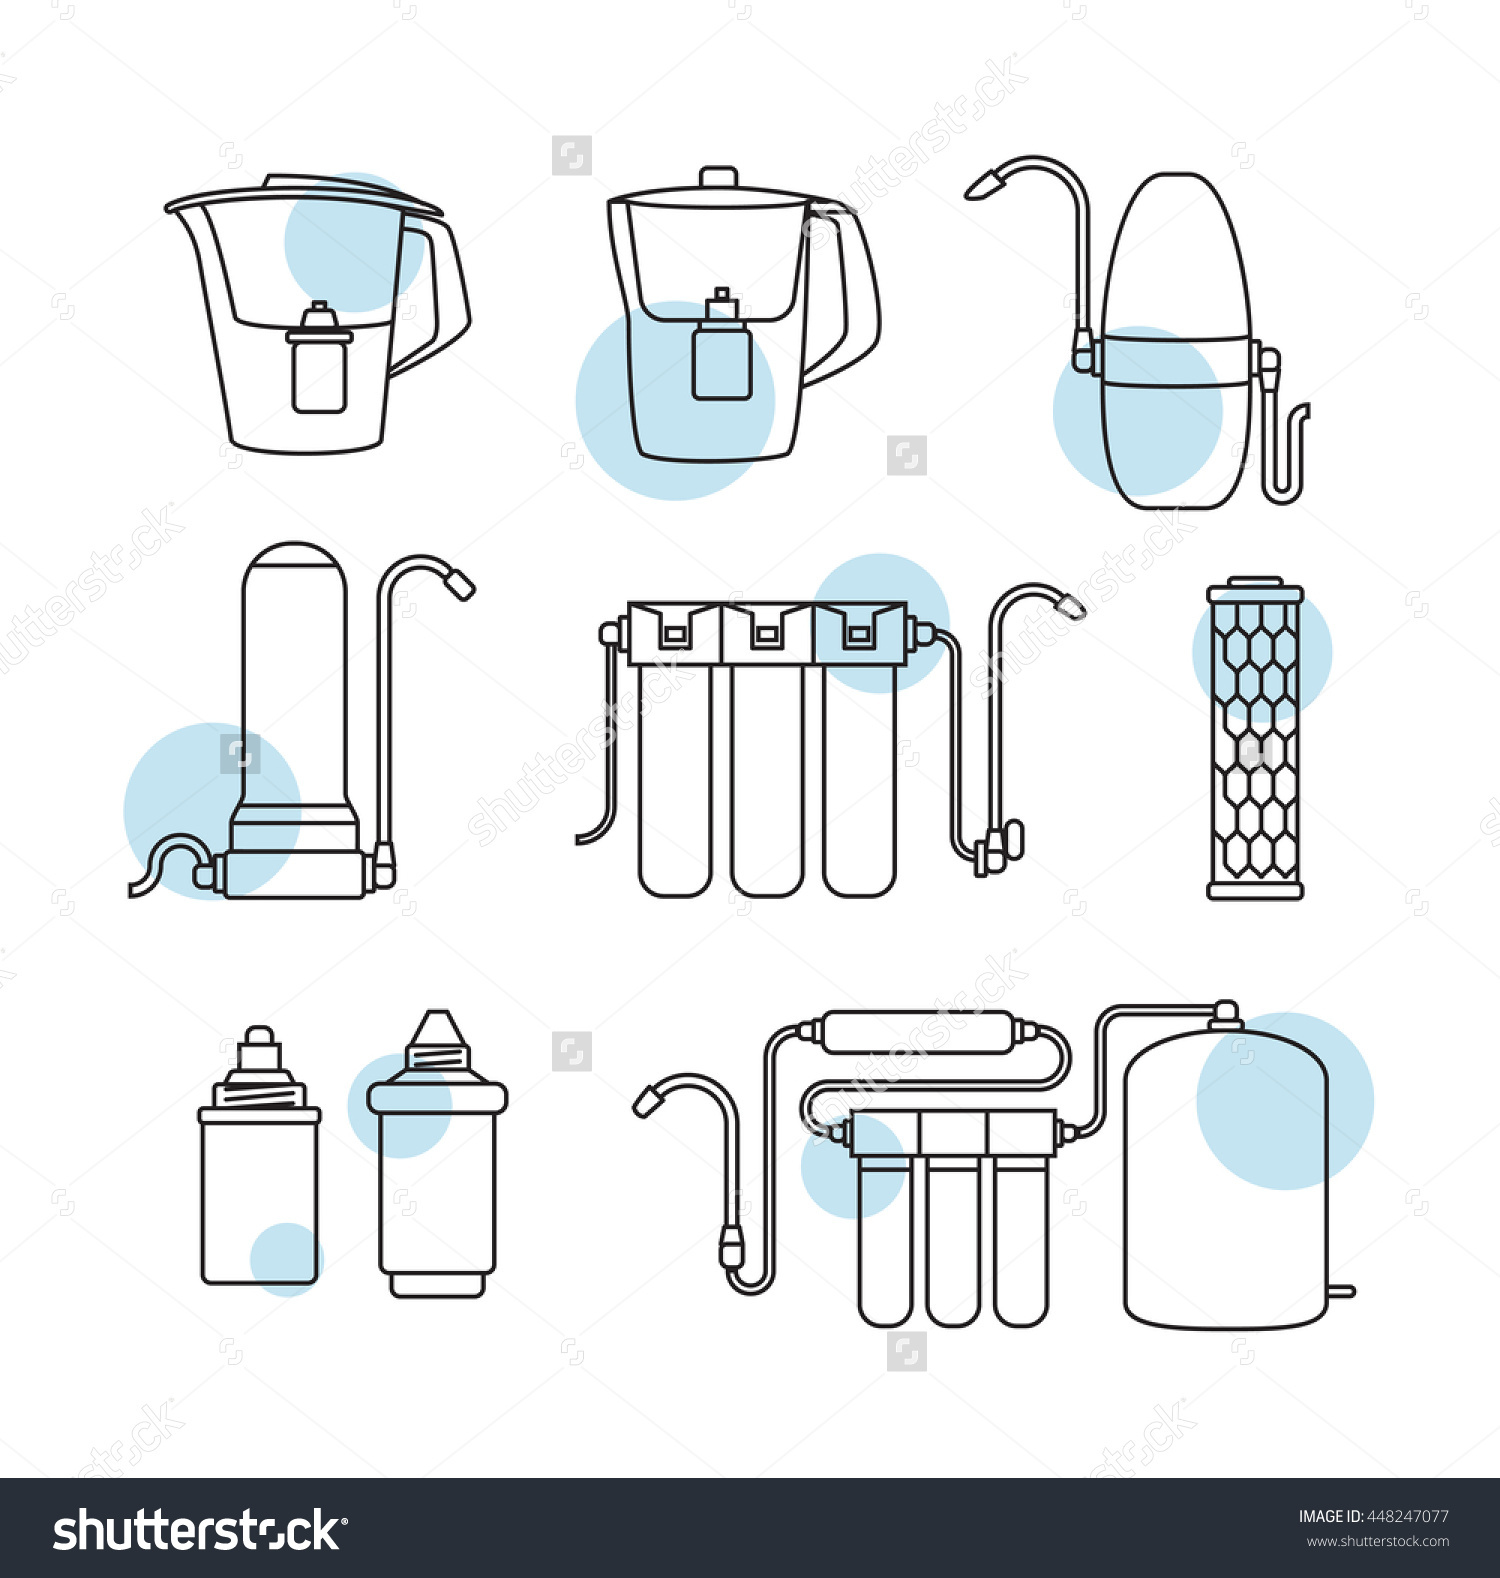 Water Filter Isolated Vector Icons Linear Stock Vector 448247077.